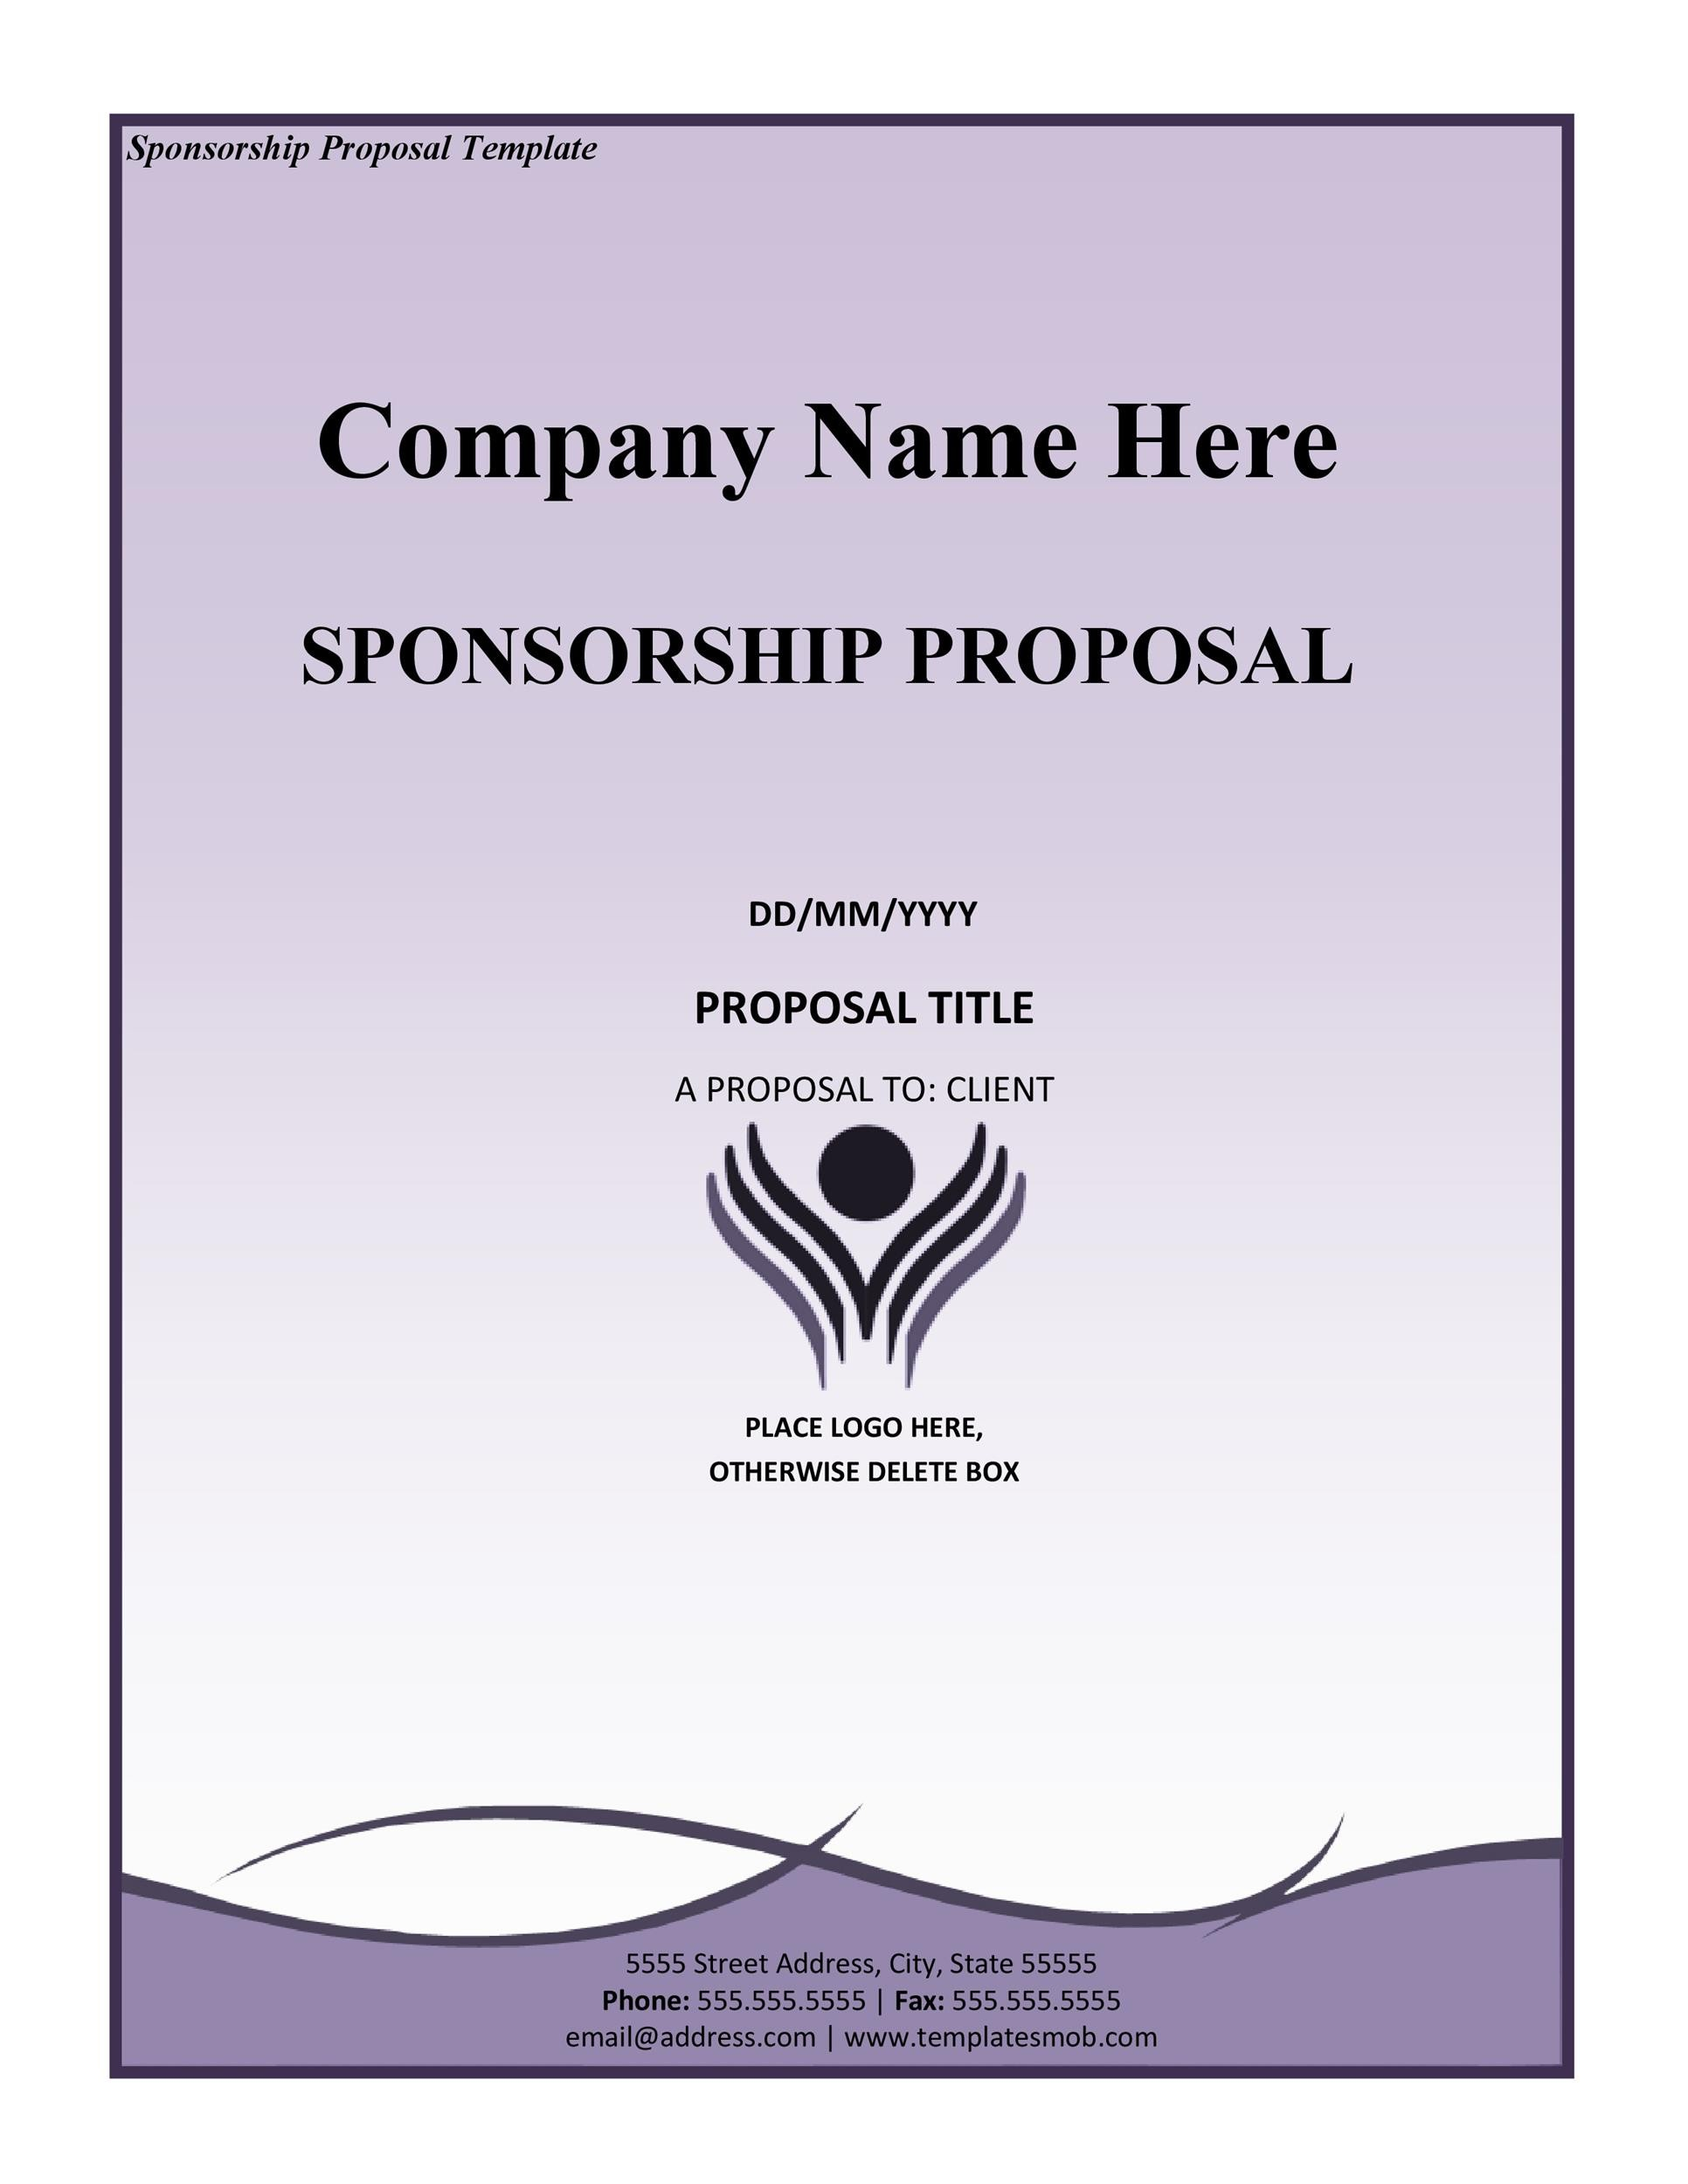 40 Sponsorship Letter Sponsorship Proposal Templates – Example of a Sponsorship Proposal